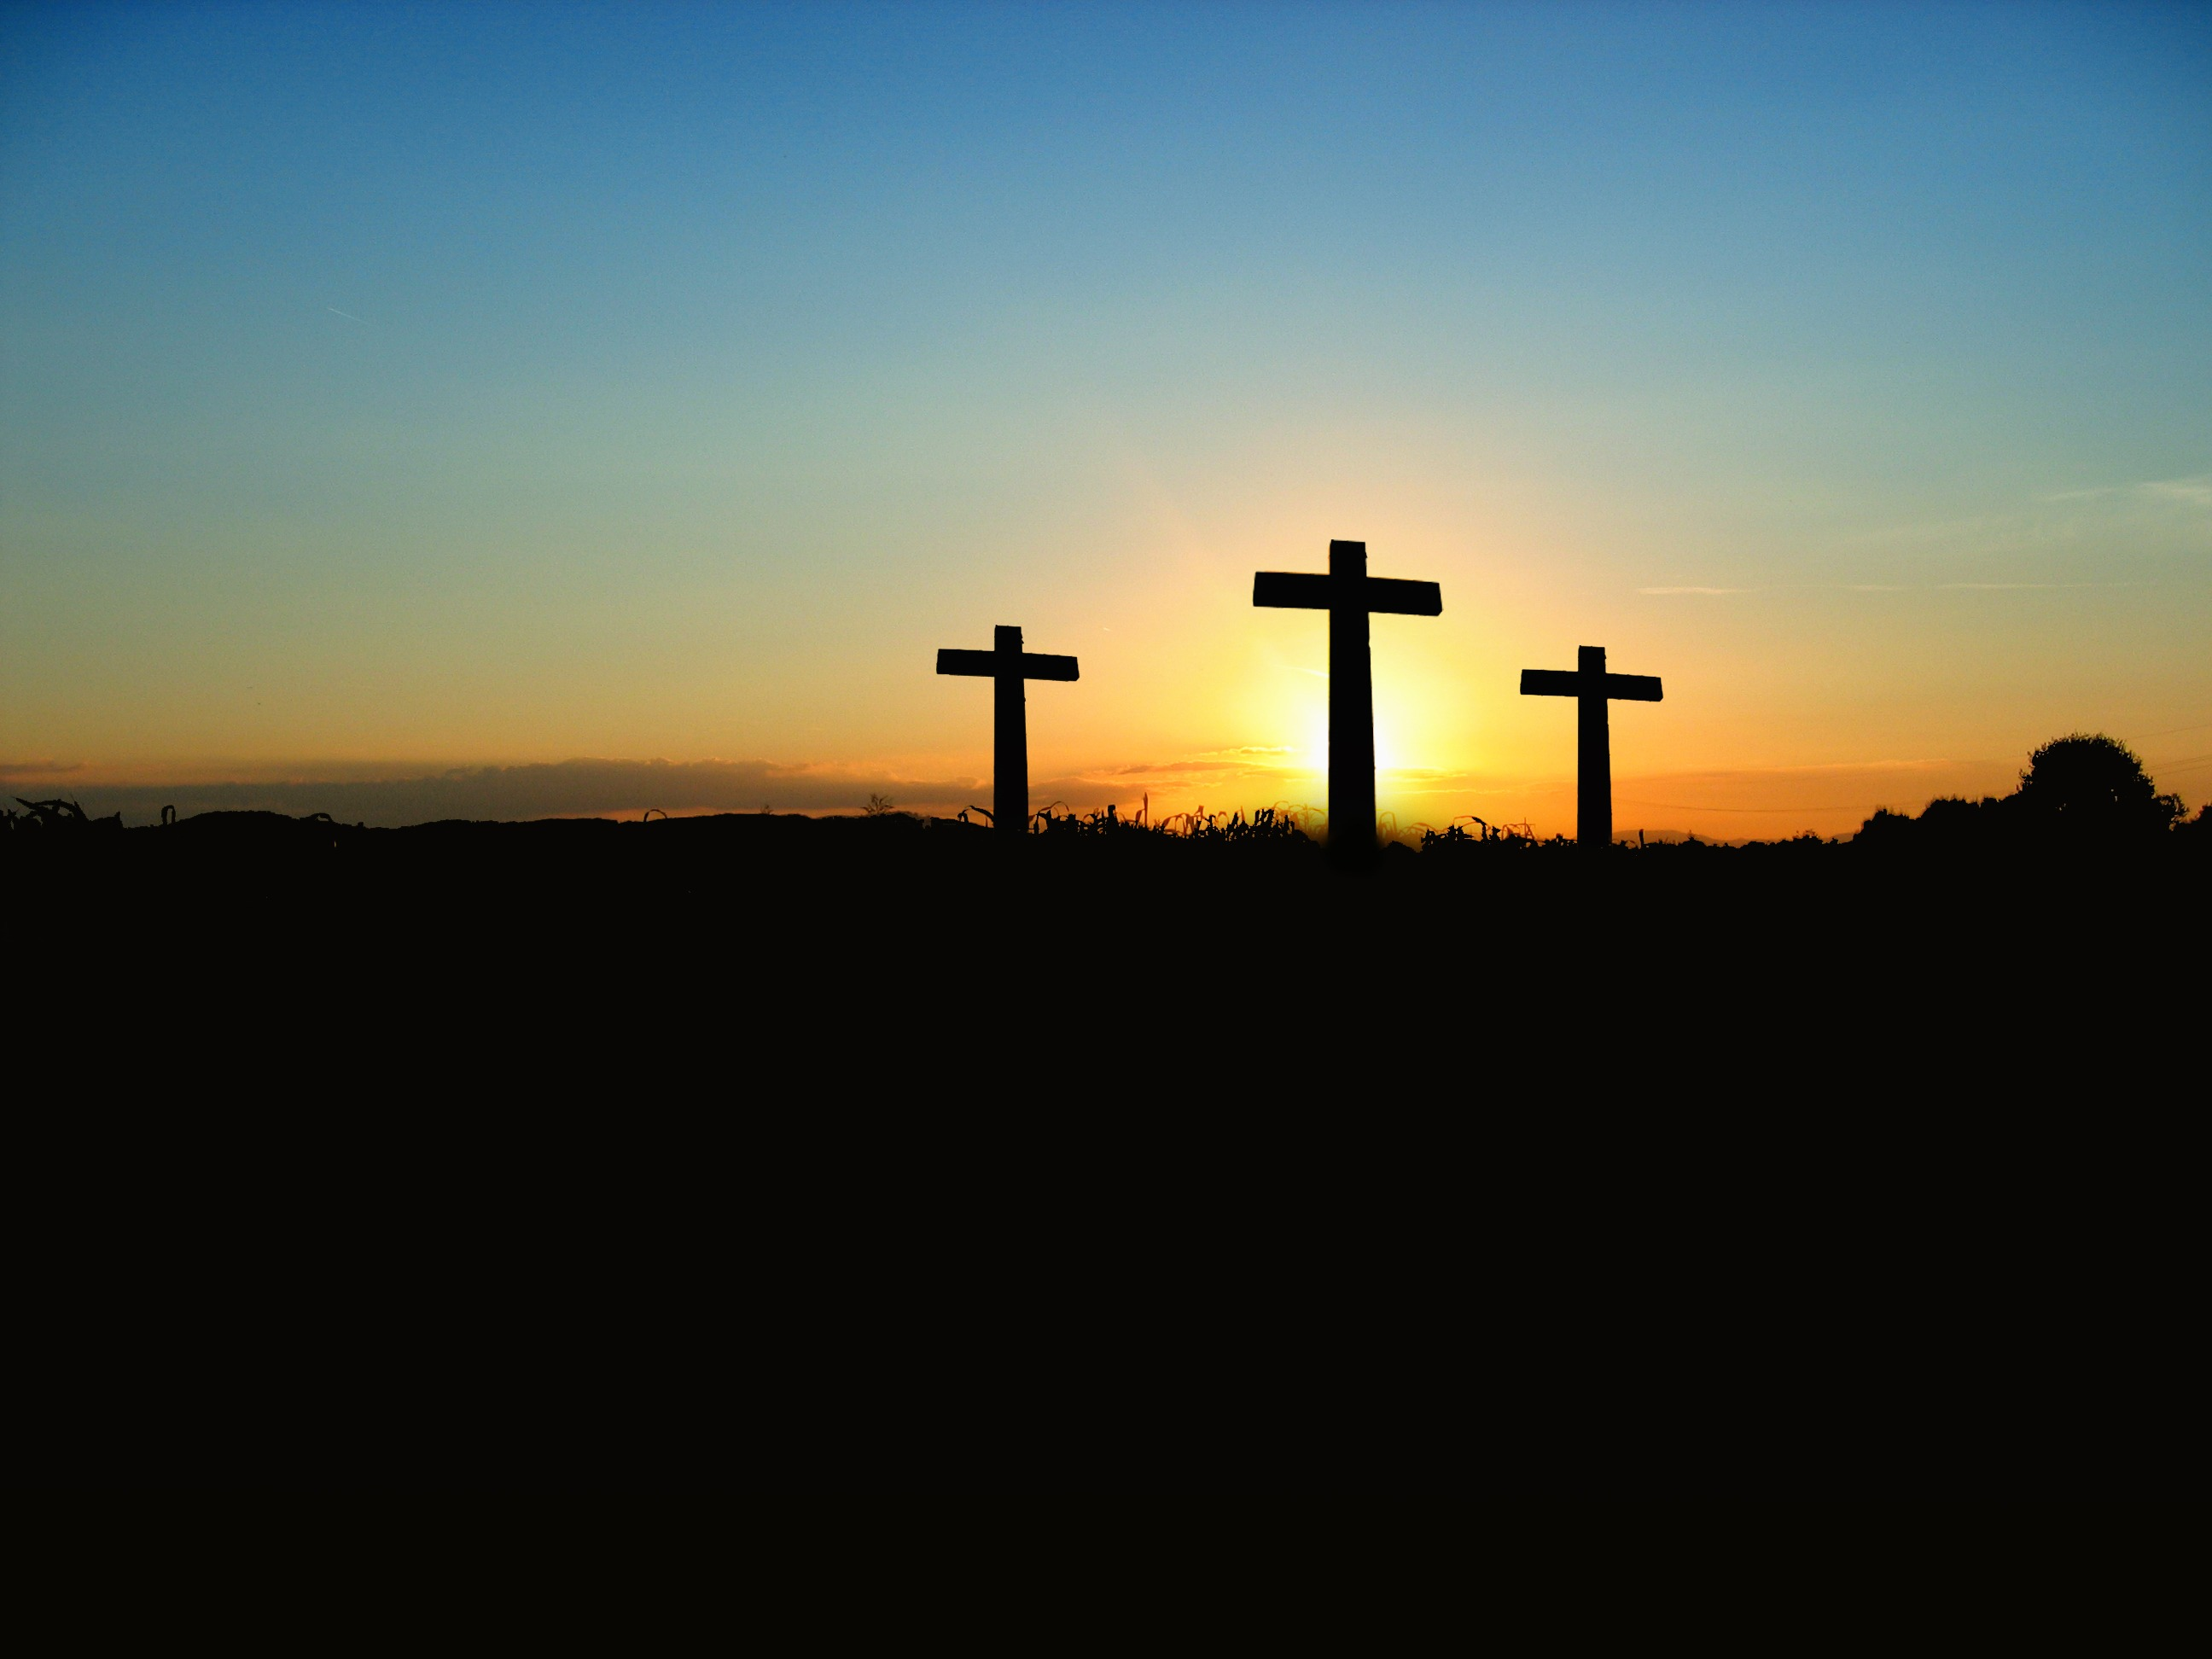 Blue Iphone 4 Wallpaper Silhouette Photo Of 3 Cross Under The Blue Sky 183 Free